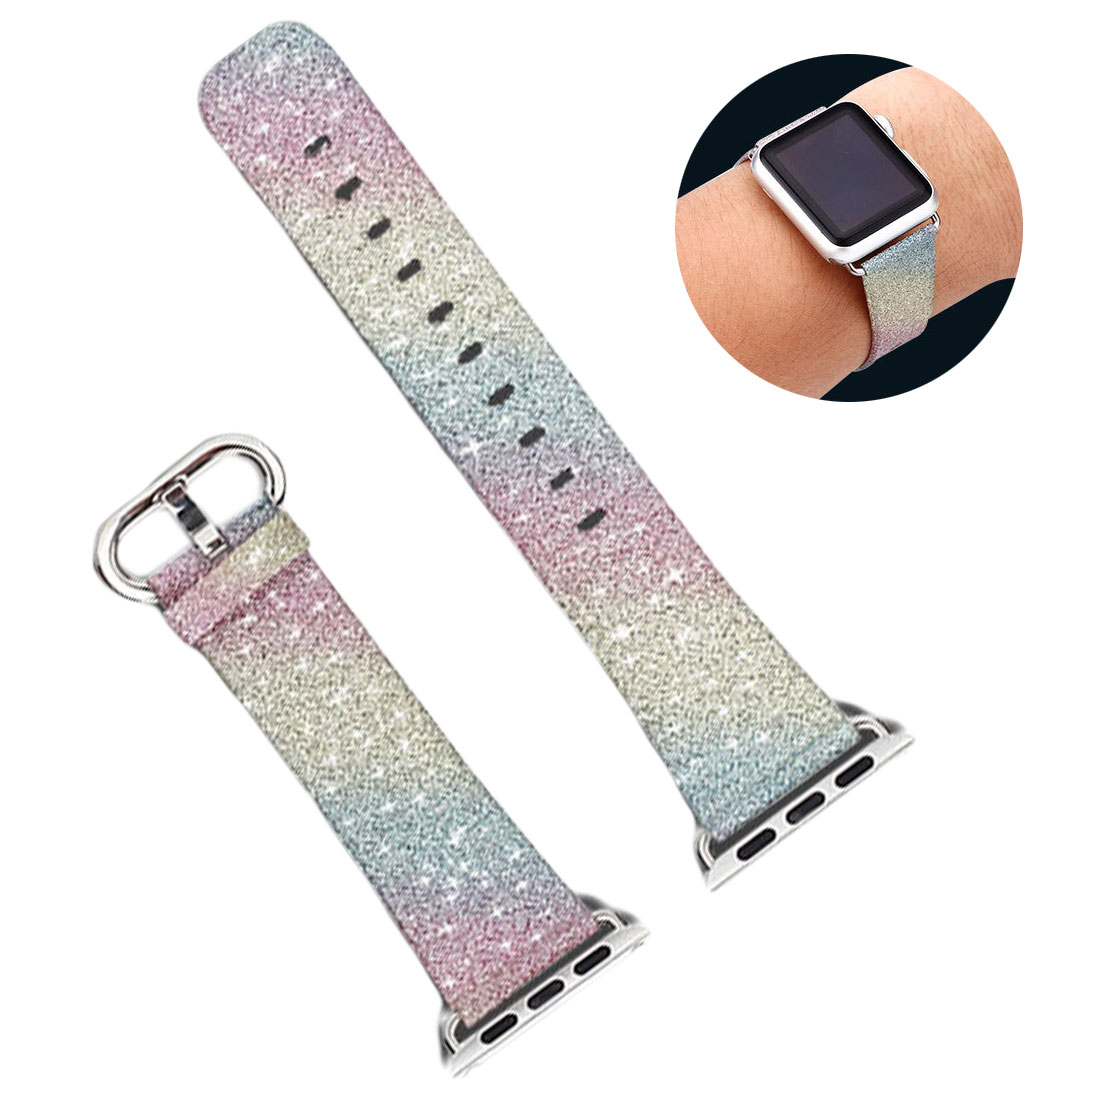 Rainbow Bling Glitter Leather Band For Apple Watch Series 1 2 3 4 5 Strap 42mm 38mm Bracelet For IWatch Wristband